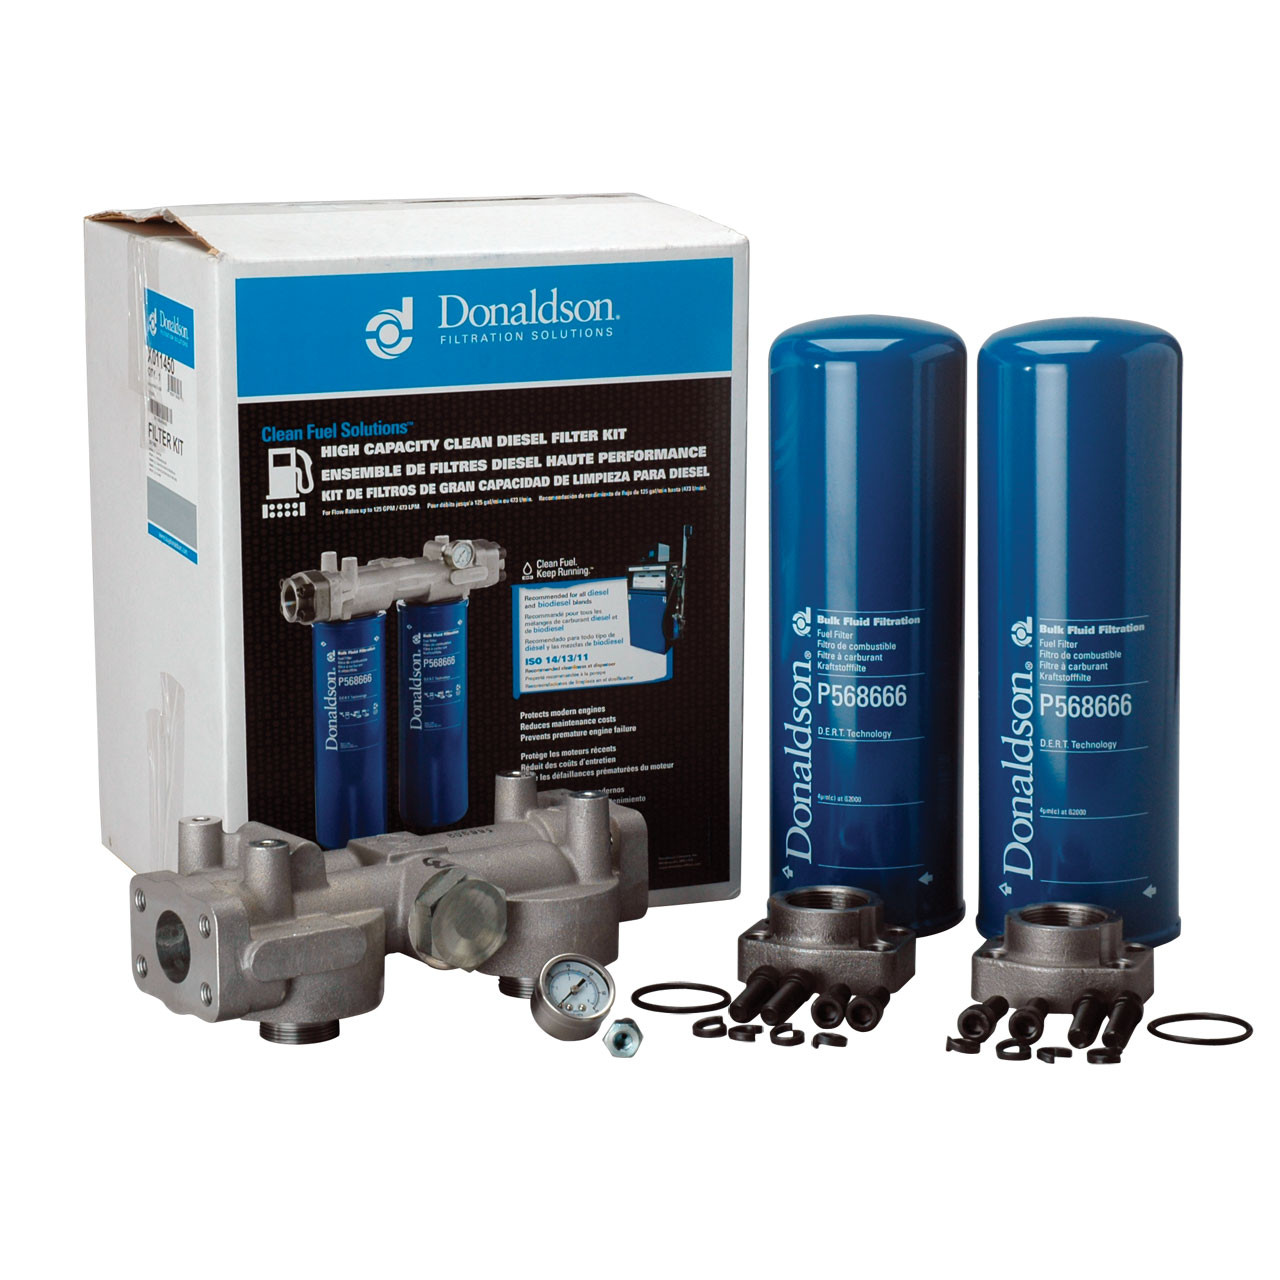 Donaldson High Capacity Clean Diesel Kit 4 Micron John M Velcon Filters Fuel Aviation